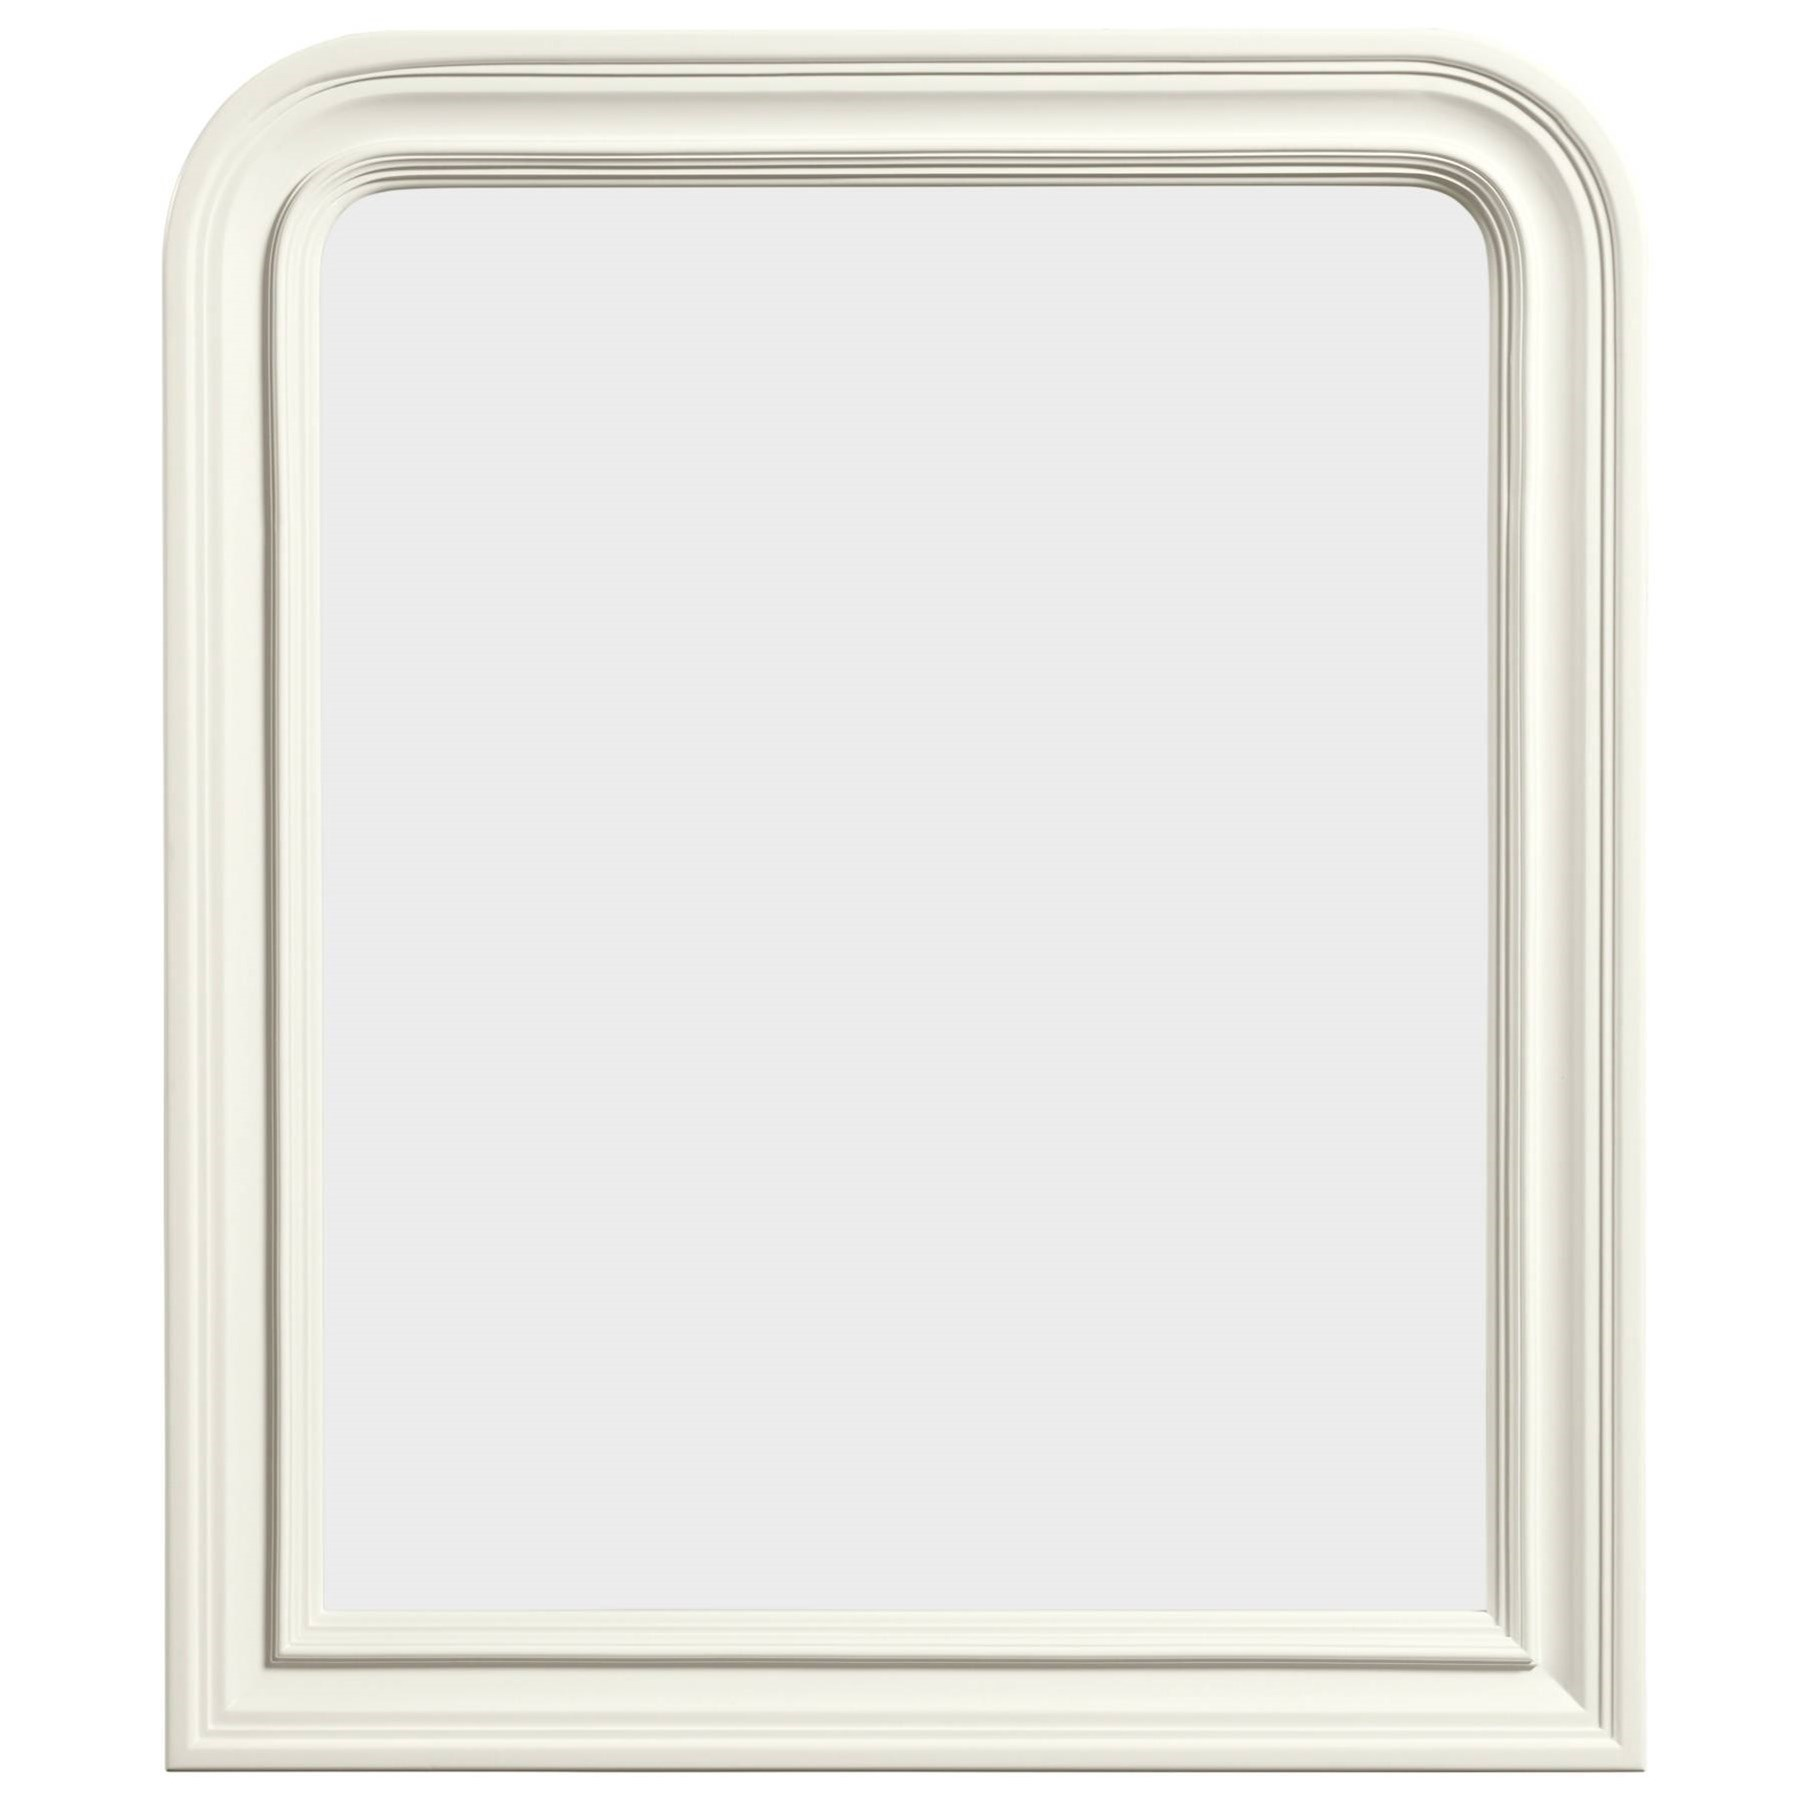 Stone & Leigh Furniture Teaberry Lane Mirror - Item Number: 575-23-30